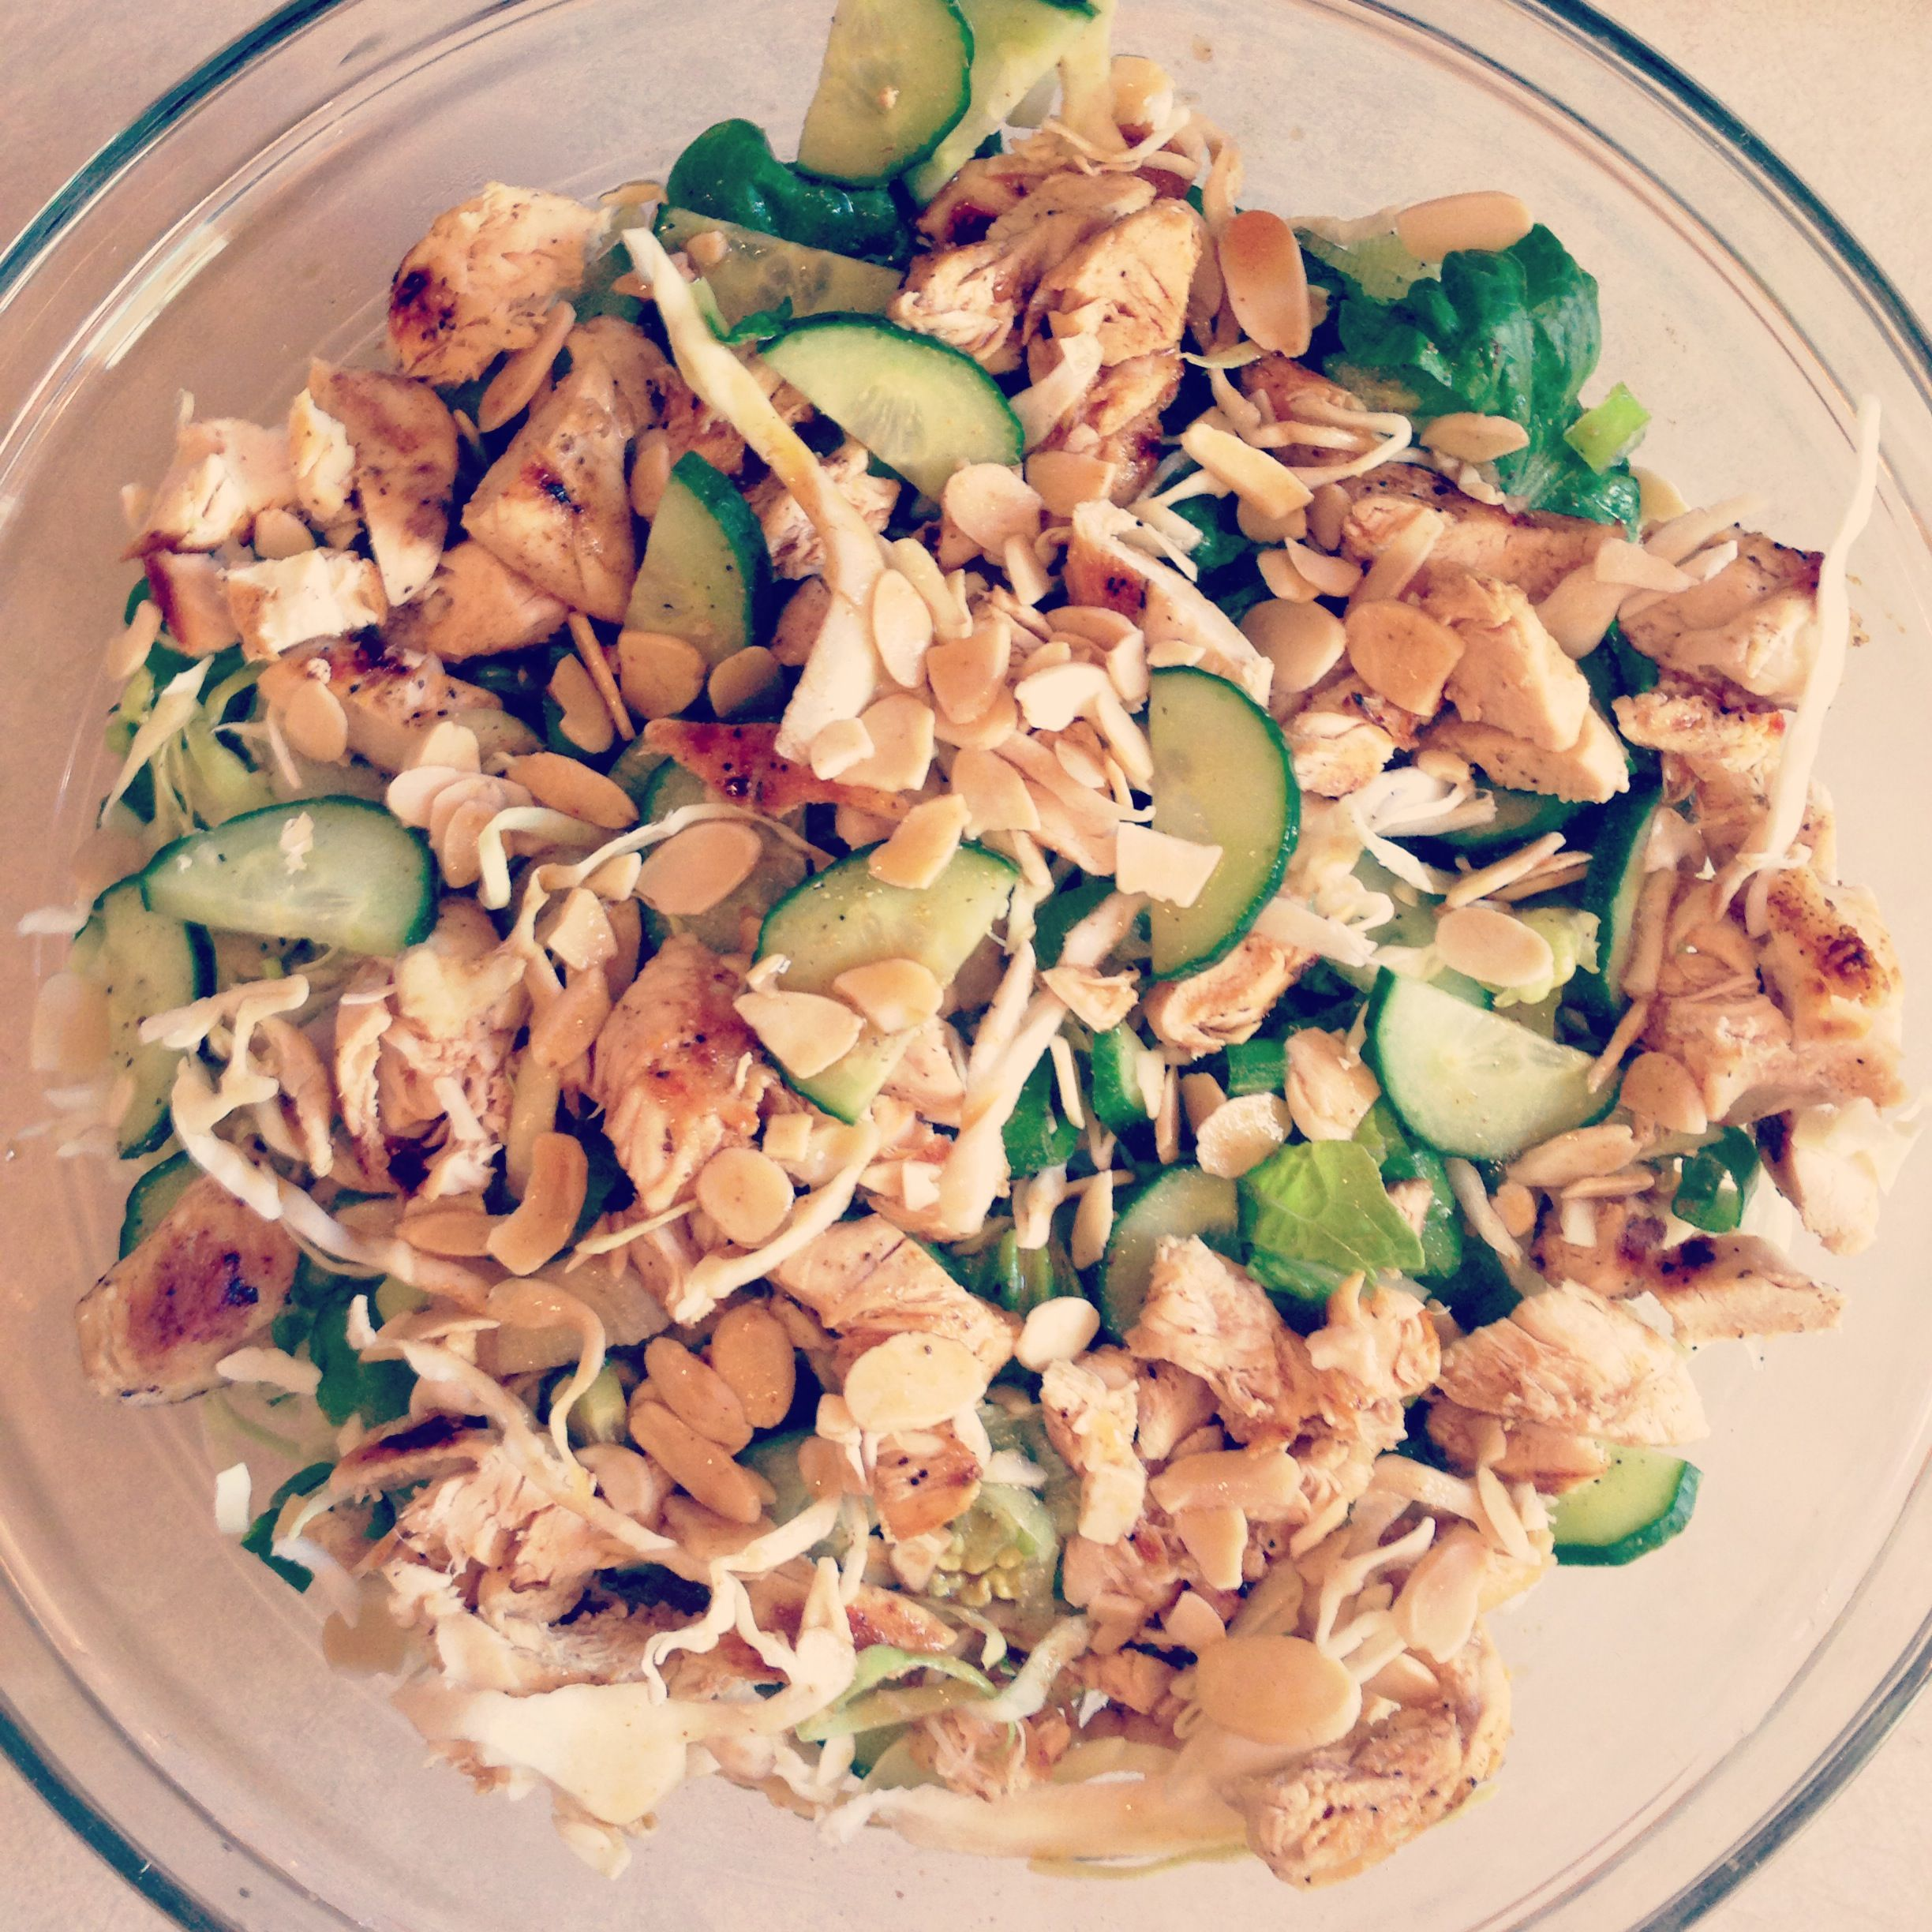 Made this delicious chinese chicken salad for dinner tonight! Salad: - Romaine lettuce, cabbage, green onion, cucumber, sliced toasted almonds, and chicken Dressing: - 2 tablespoons rice vinegar - 1 tablespoon soy sauce - 1 tablespoon sesame oil - 1 teaspoon ginger -1 teaspoon honey